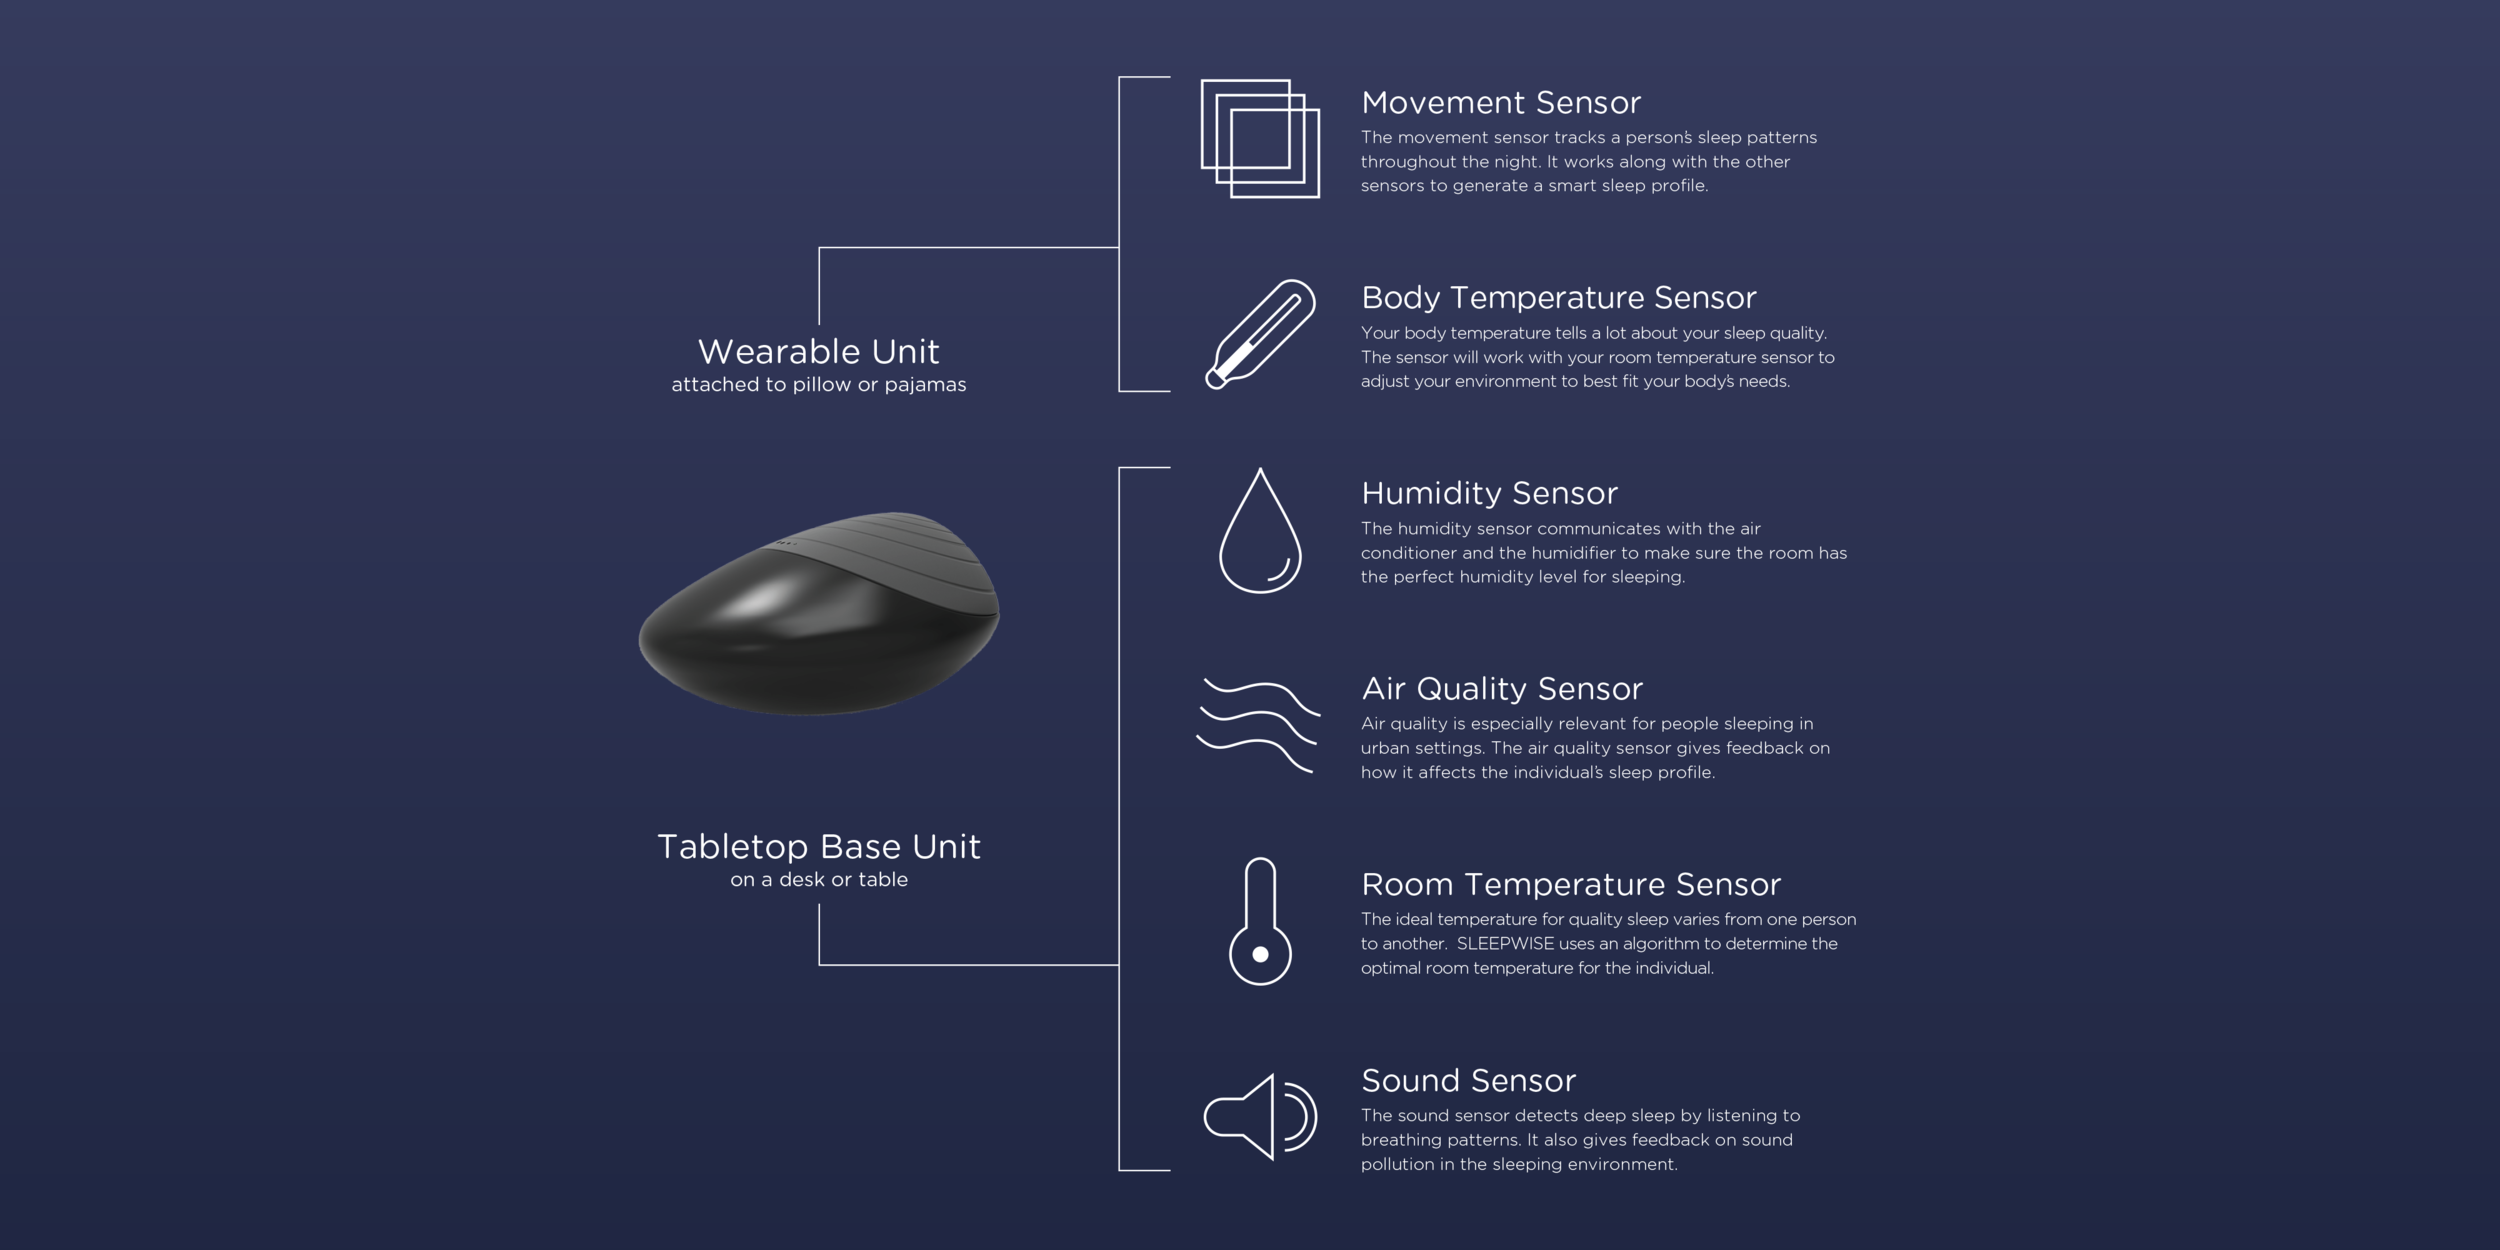 Wearable and bedside sensor collect envir. and body data